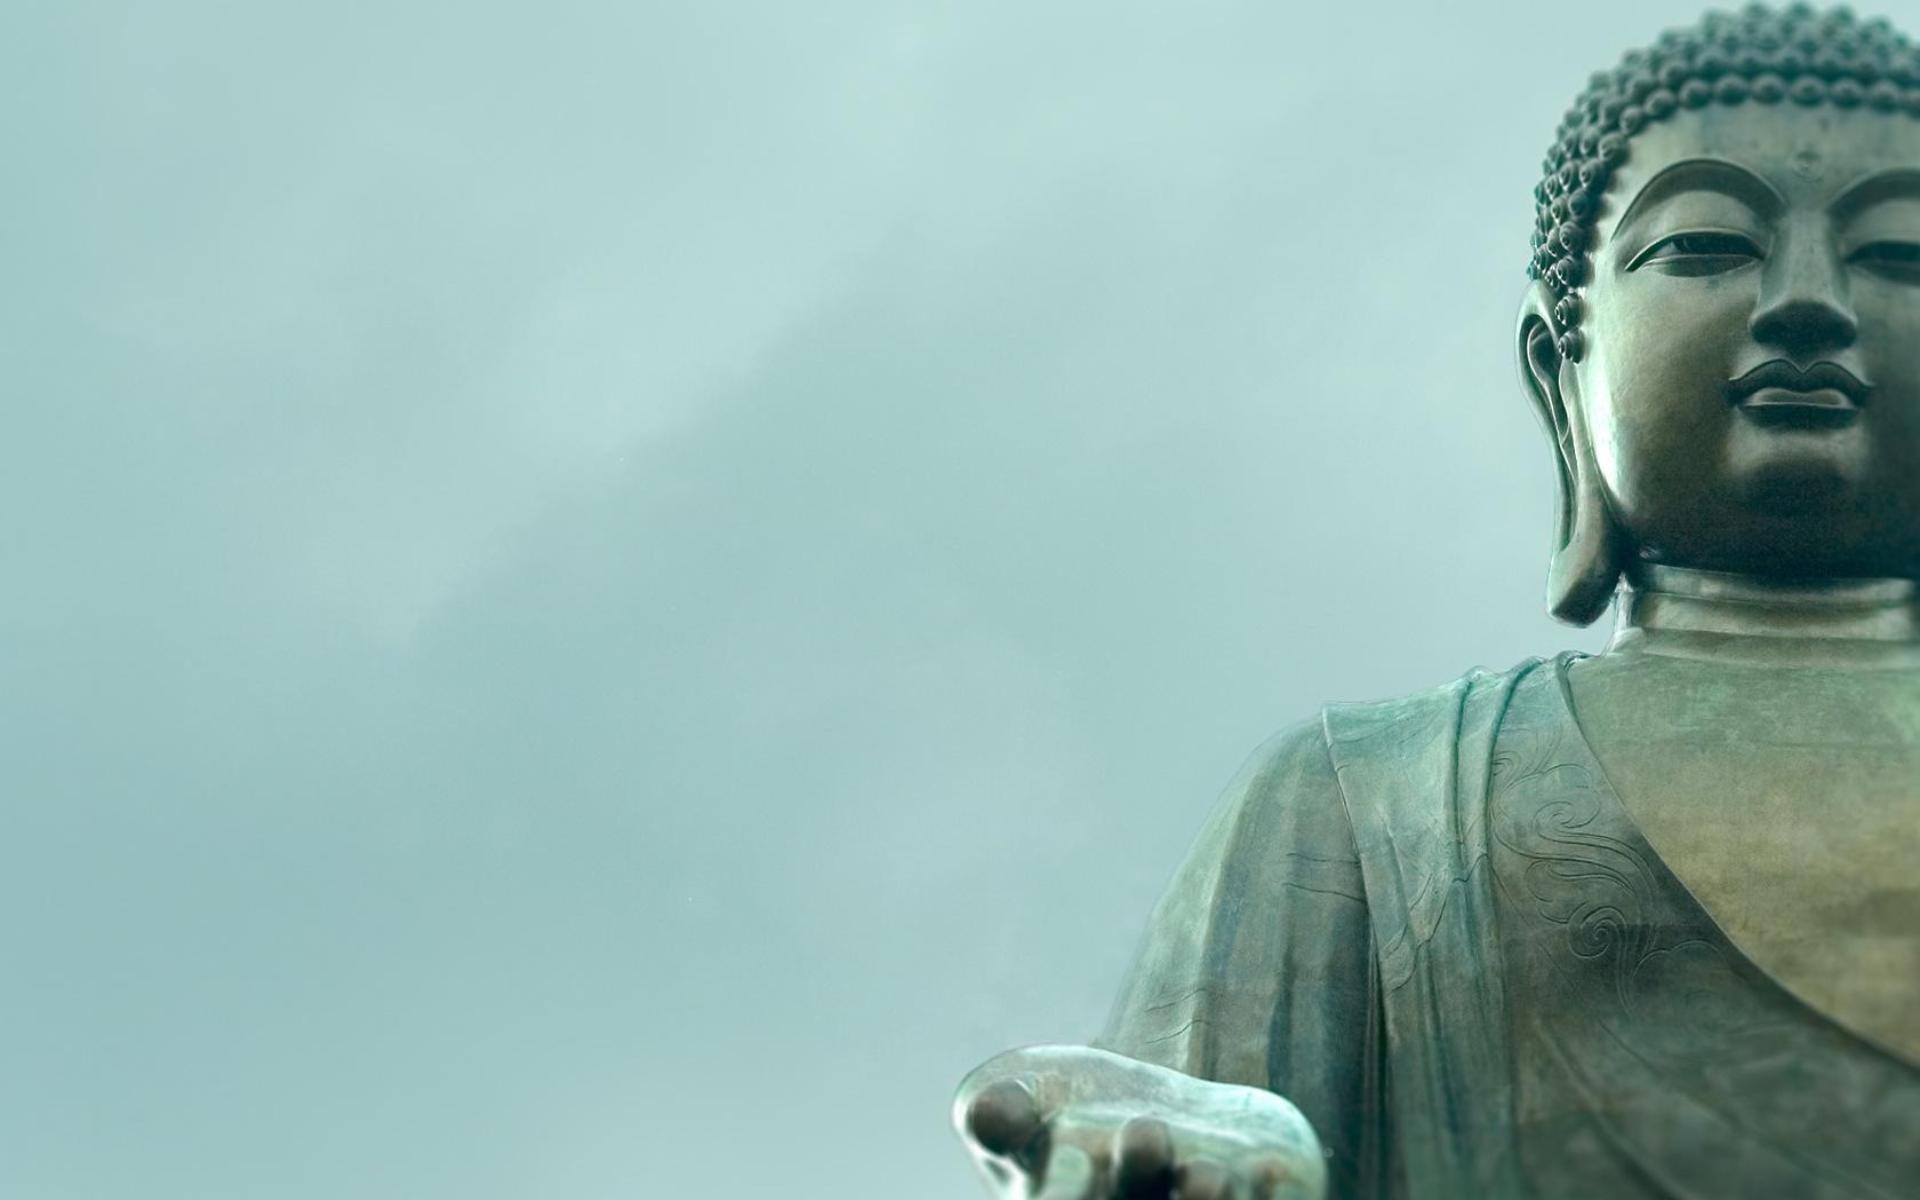 Buddha wallpaper - 876659